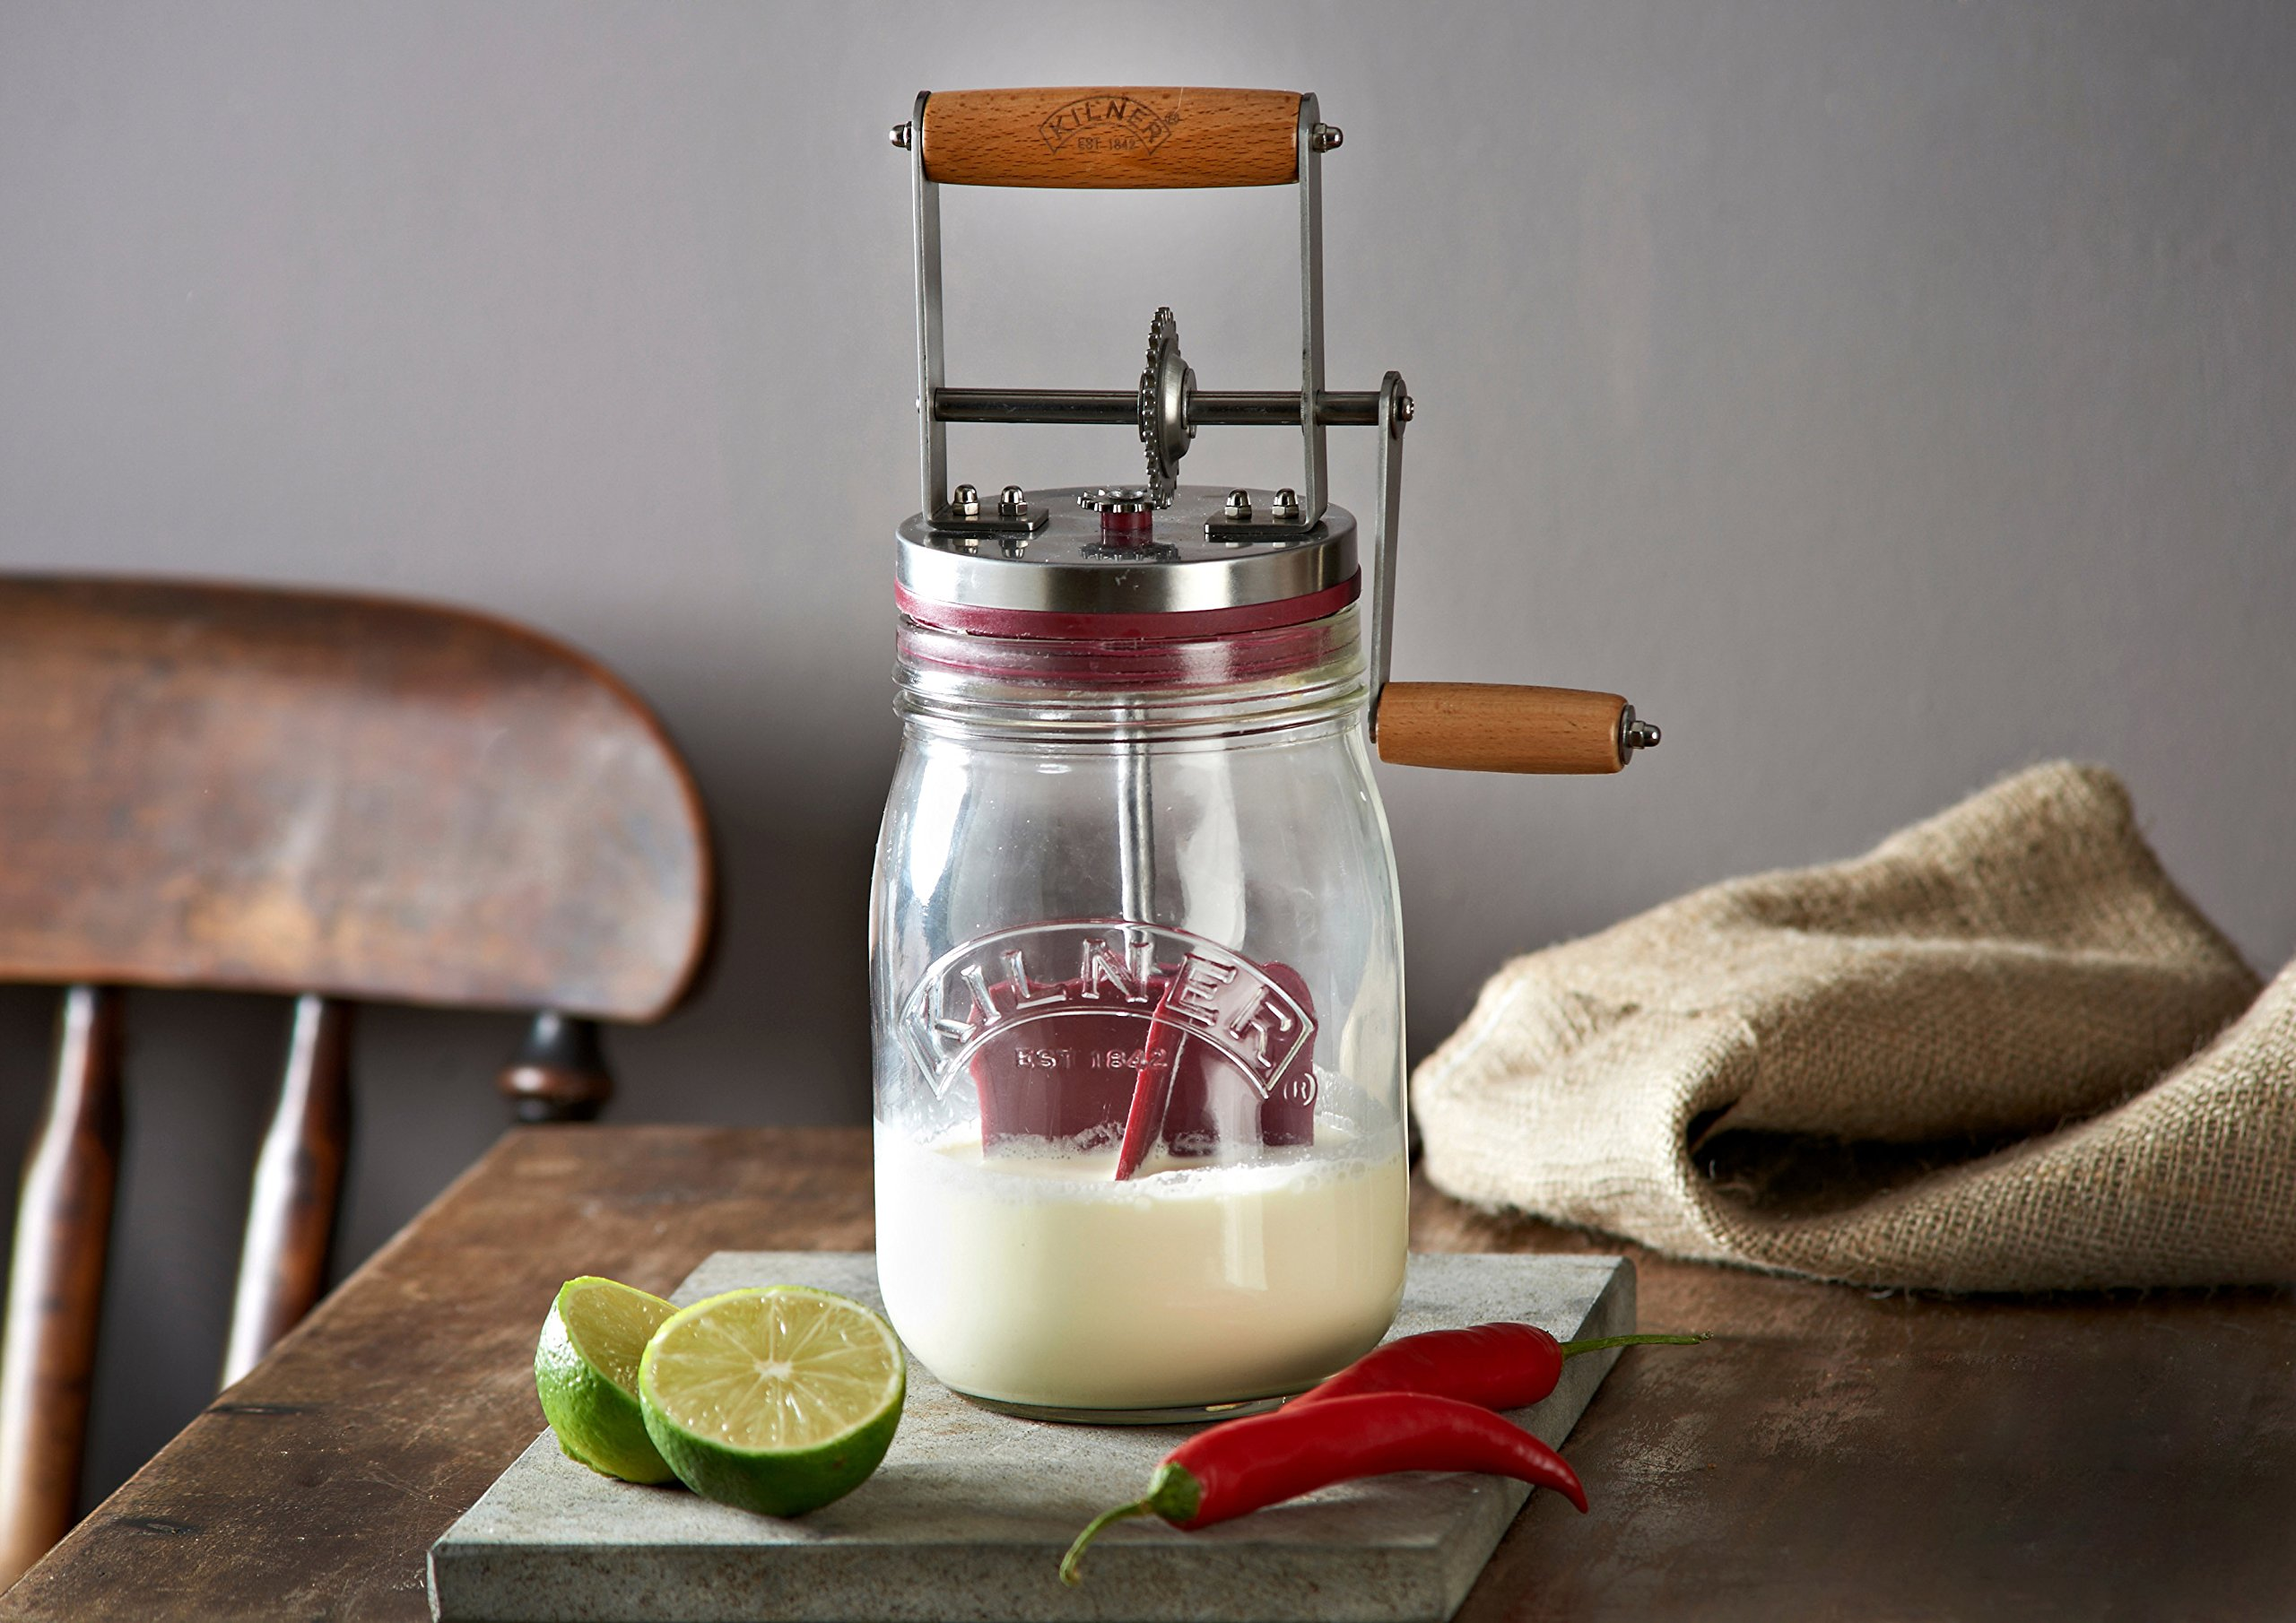 Kilner Vintage Glass Butter Churn; Delicious Homemade Butter in as Little as Ten Minutes; Large 34-Fluid Ounce Capacity; Recipes Included by Kilner (Image #5)